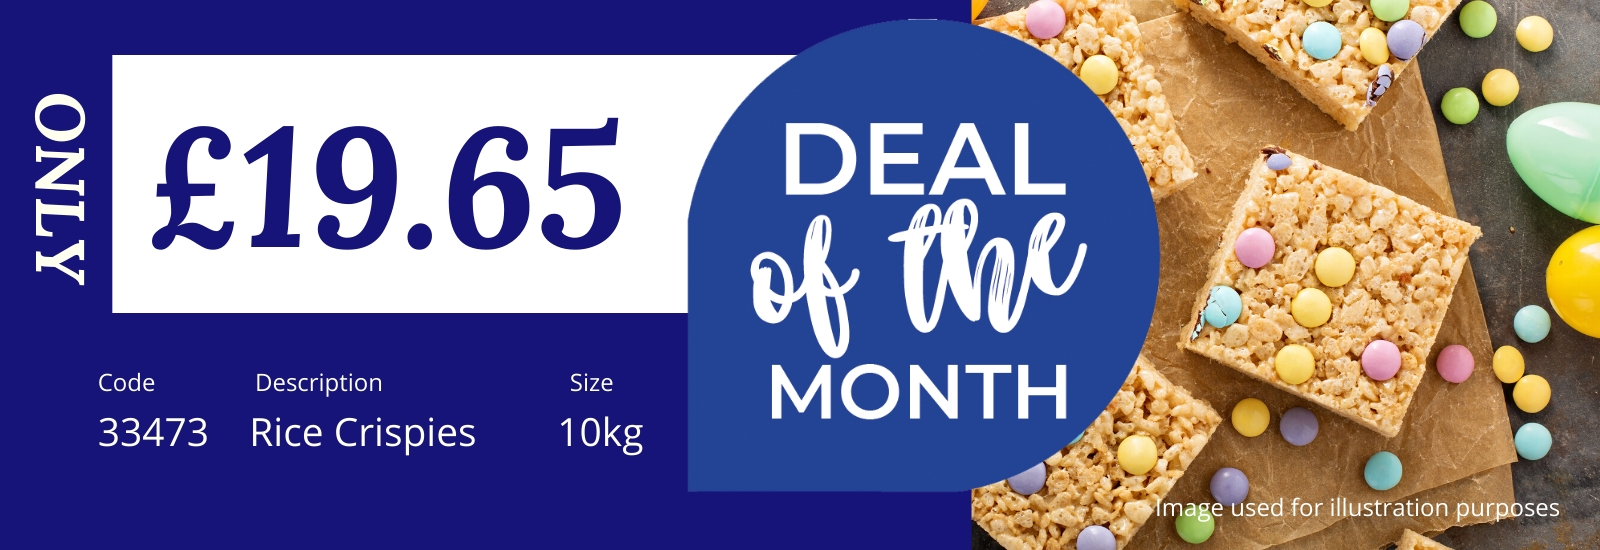 BAKO Deal of the Month - Rice Crispies